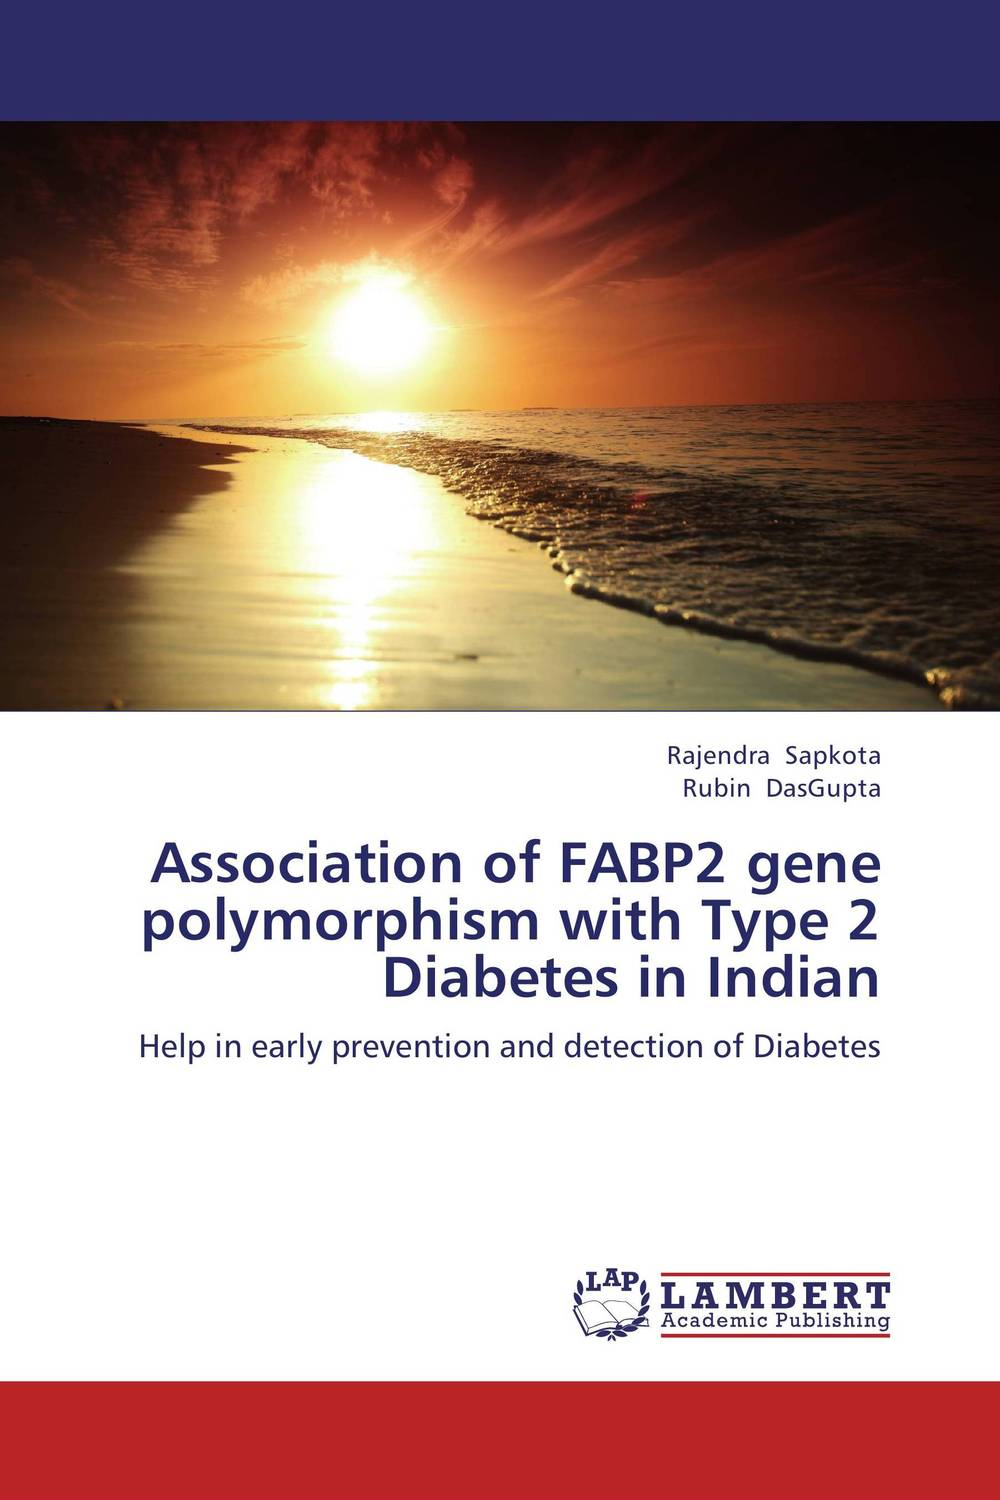 Association of FABP2 gene polymorphism with Type 2 Diabetes in Indian a preliminary study on association of adiponectin gene polymorphism